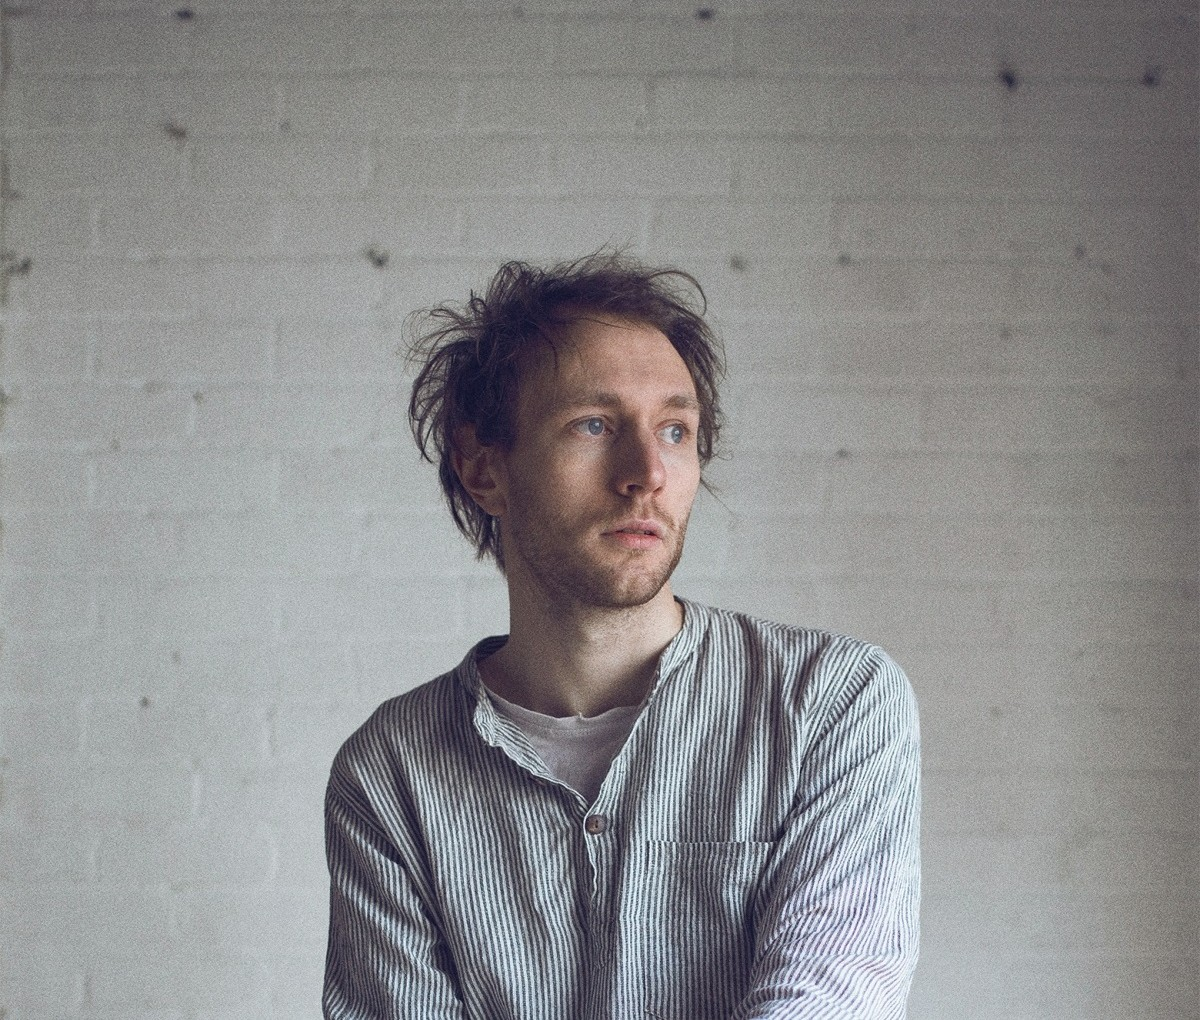 """review: the heartache & beauty of novo amor's intimate """"carry you"""